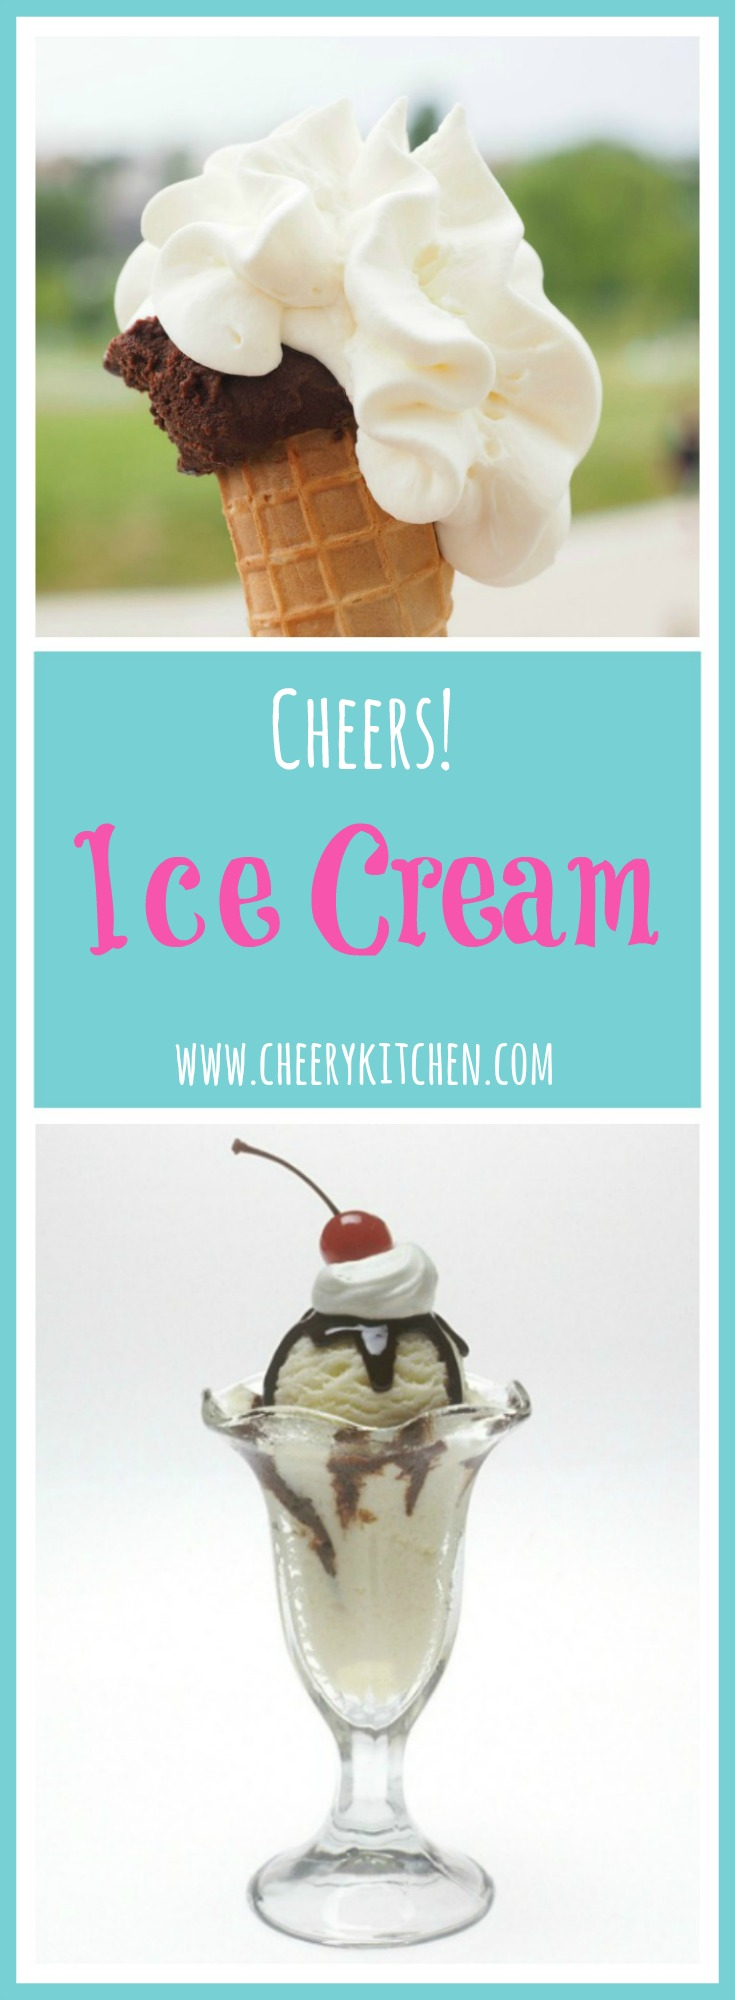 Celebrate our service men with our cheers full of ice cream and the best accessories out there! It is the best way to start the summer season!